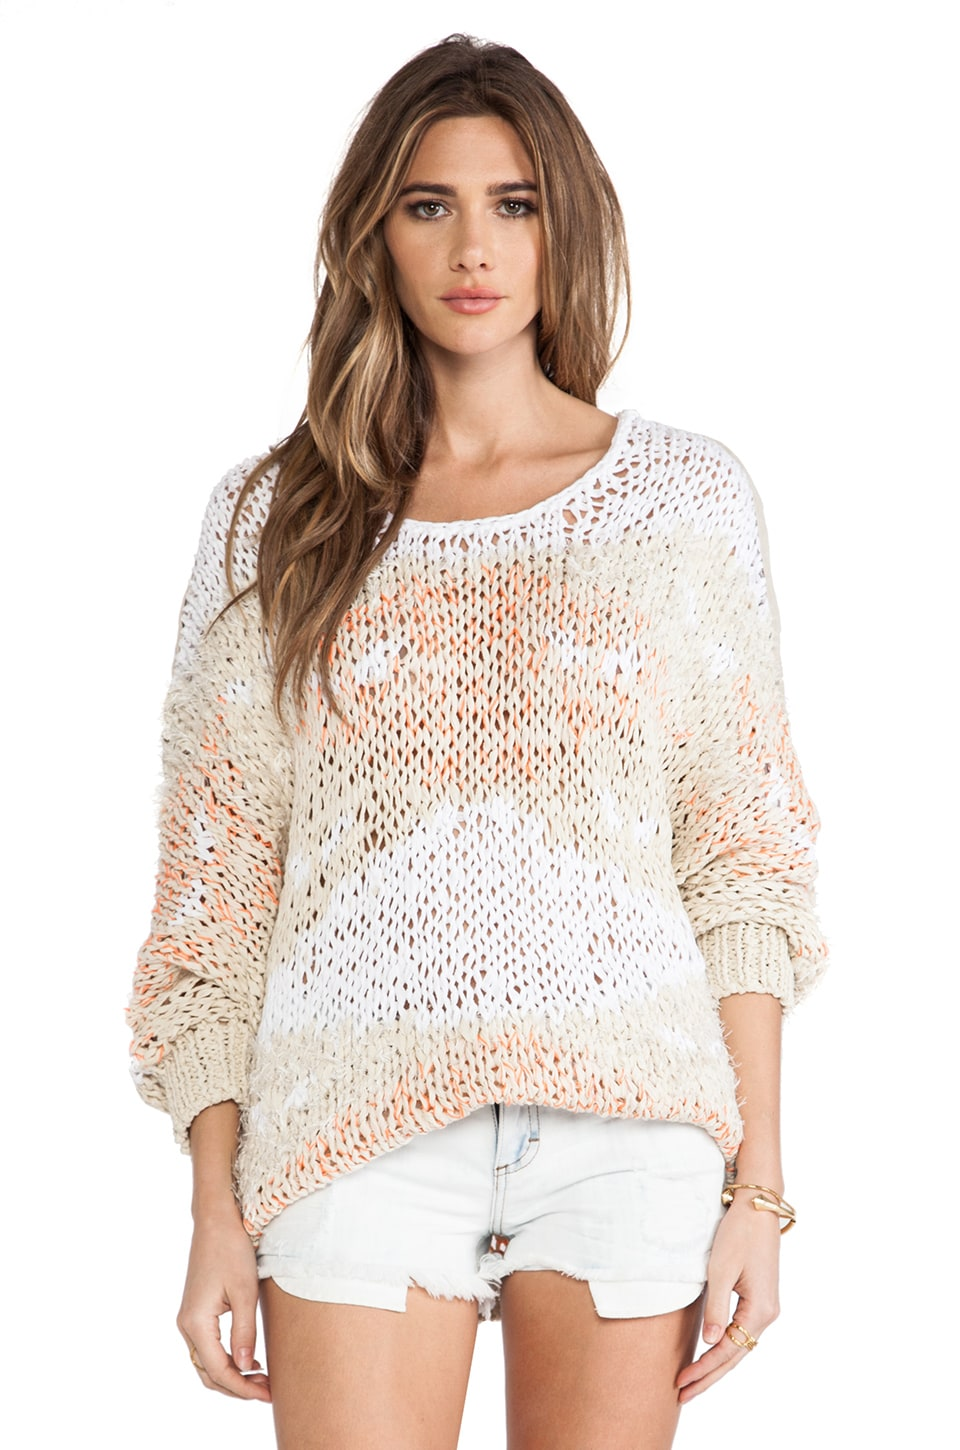 April, May Jujube Sweater in White Multi